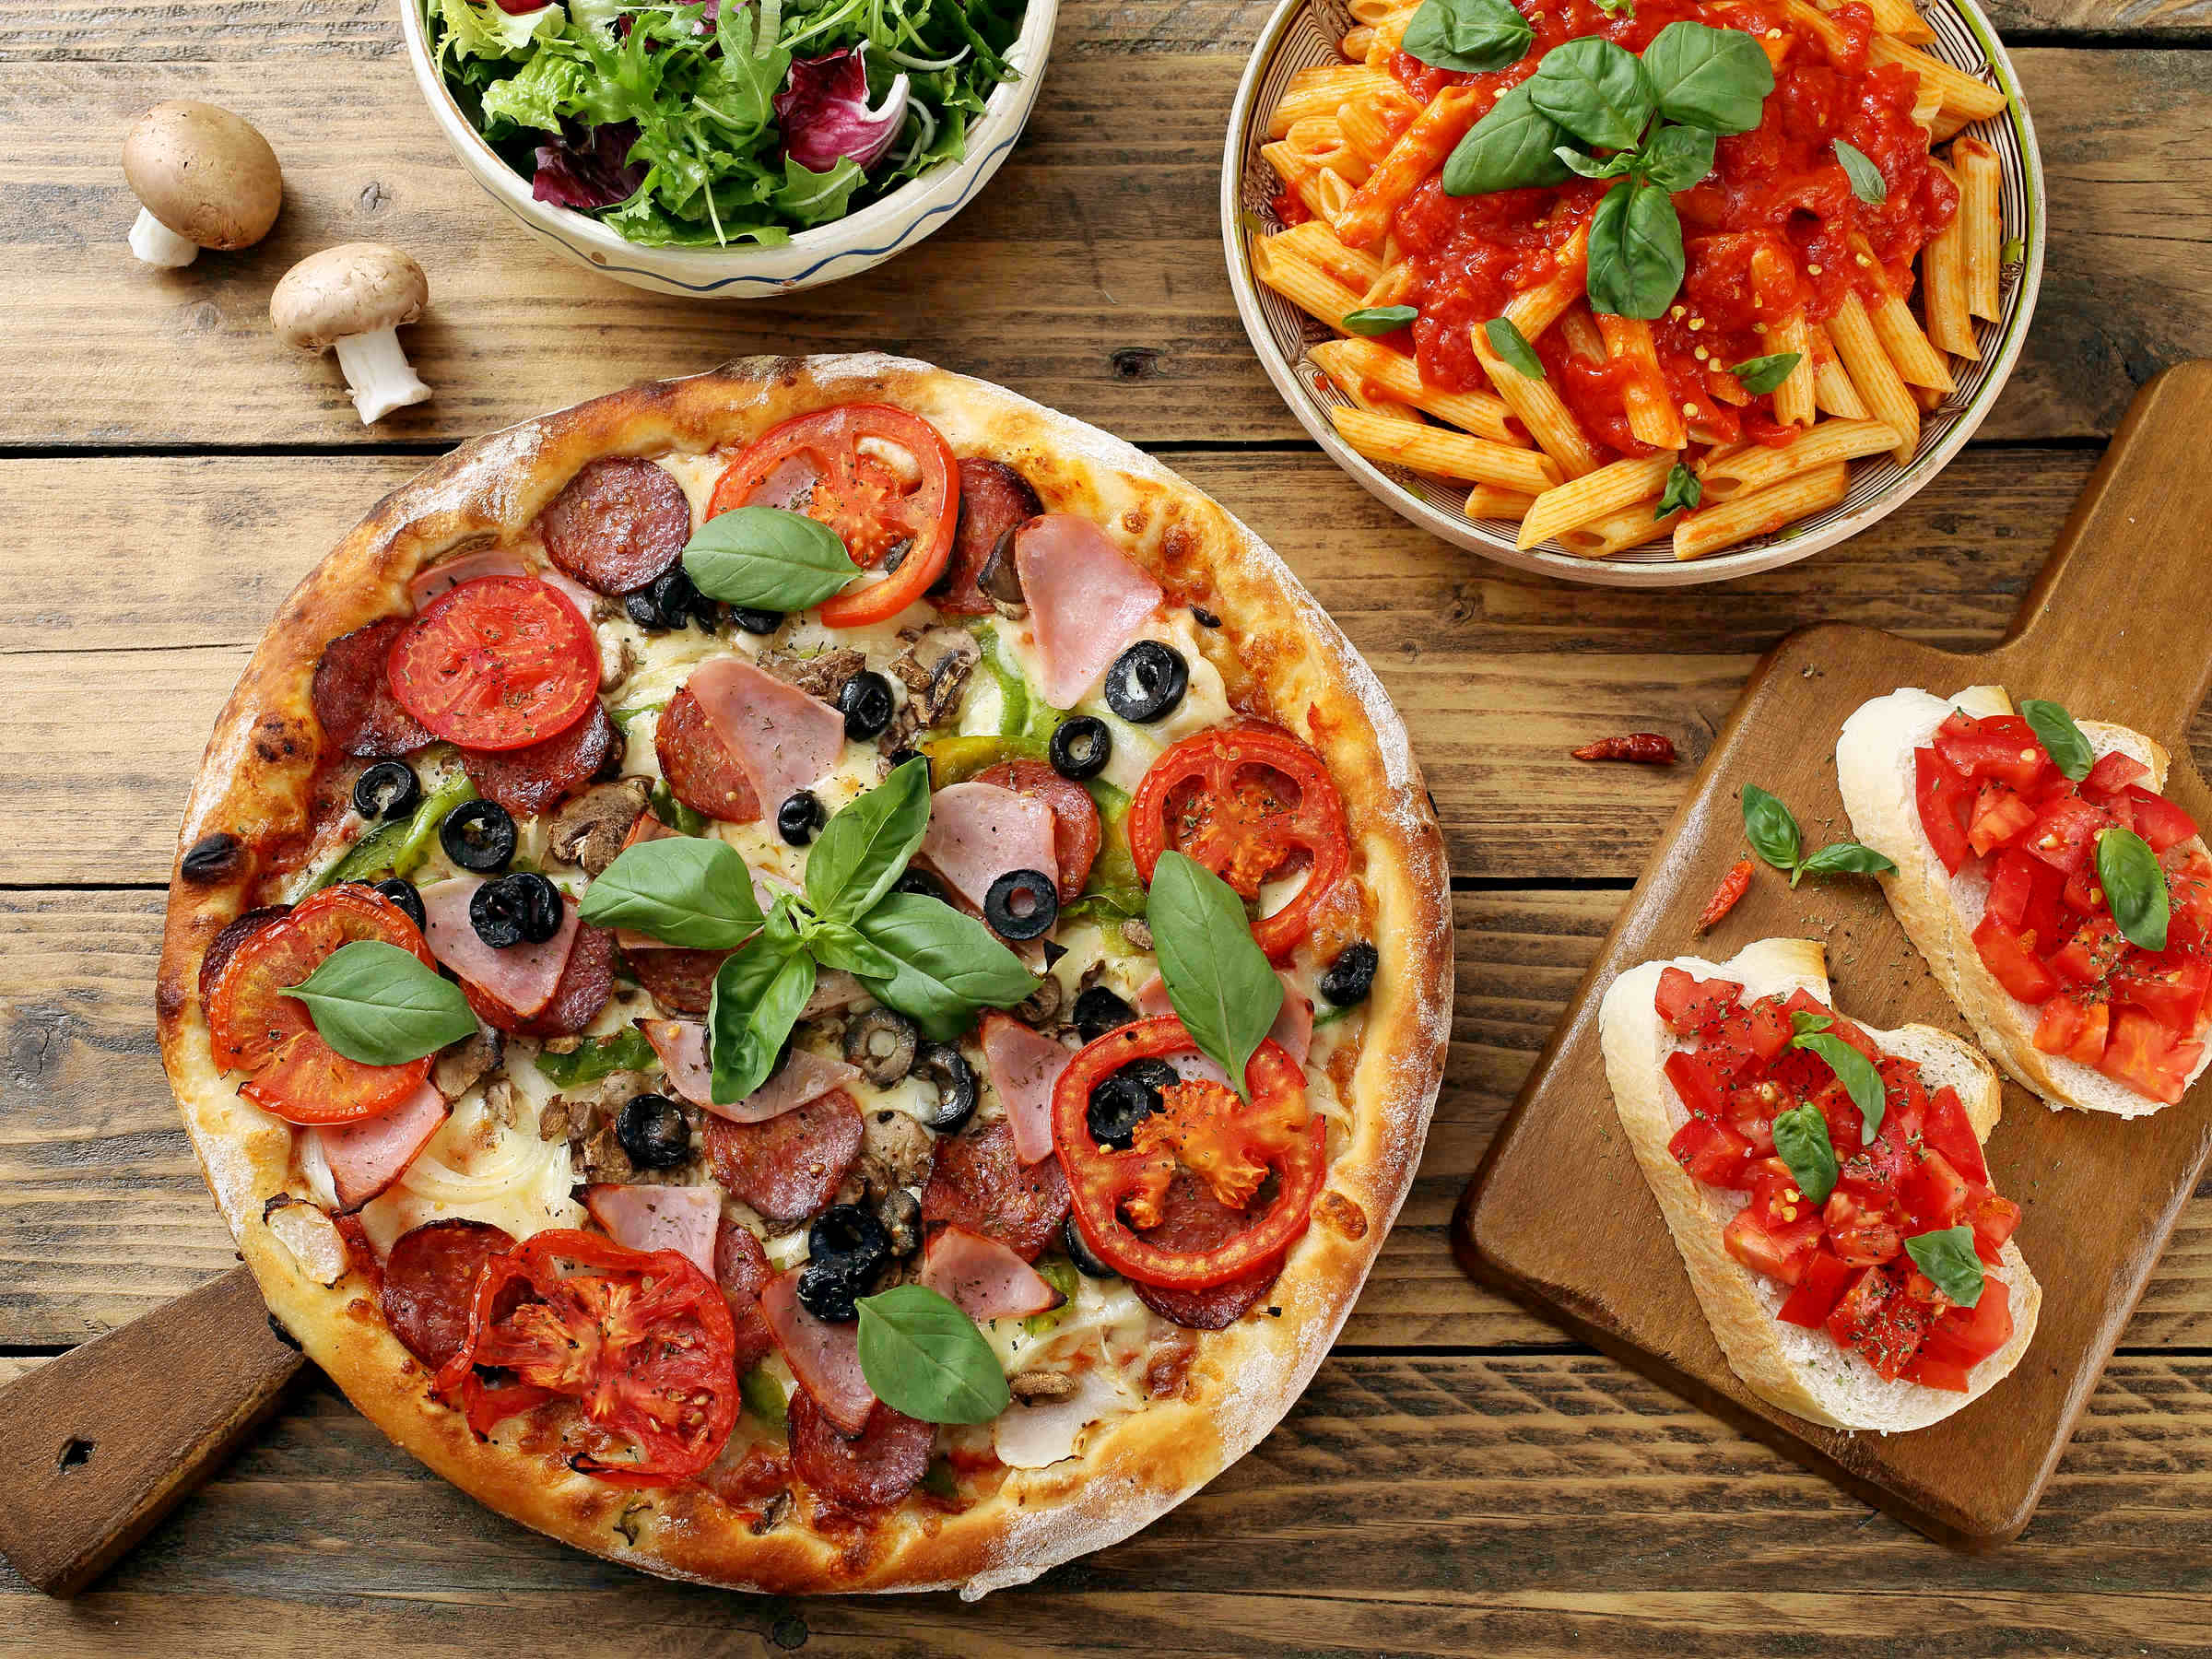 Top,View,Pizza,Pasta,With,Tomato,Sauce,And,Salad,Bowl